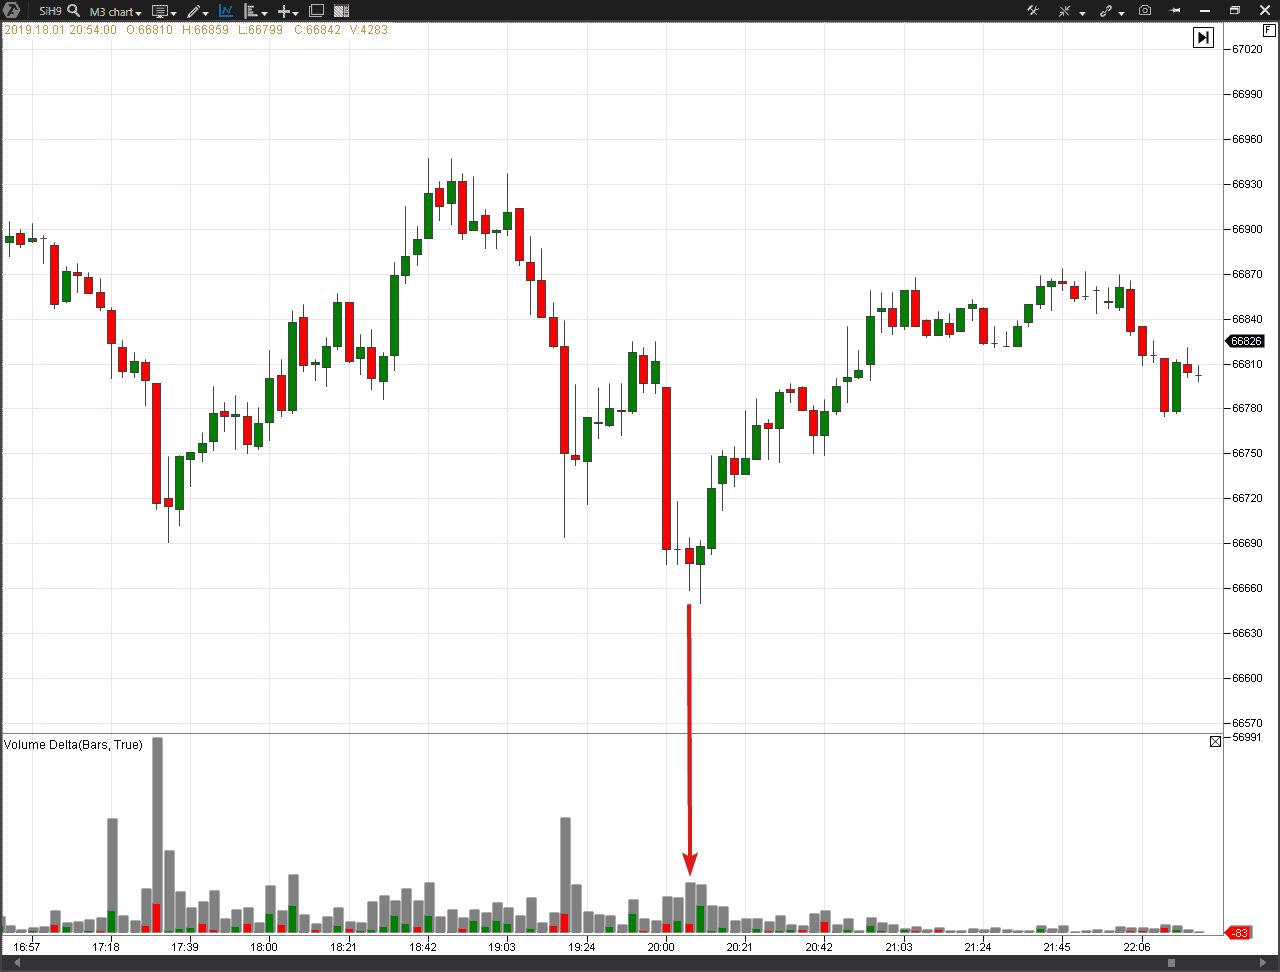 The VSA Bag Holding on a USD/RUB futures